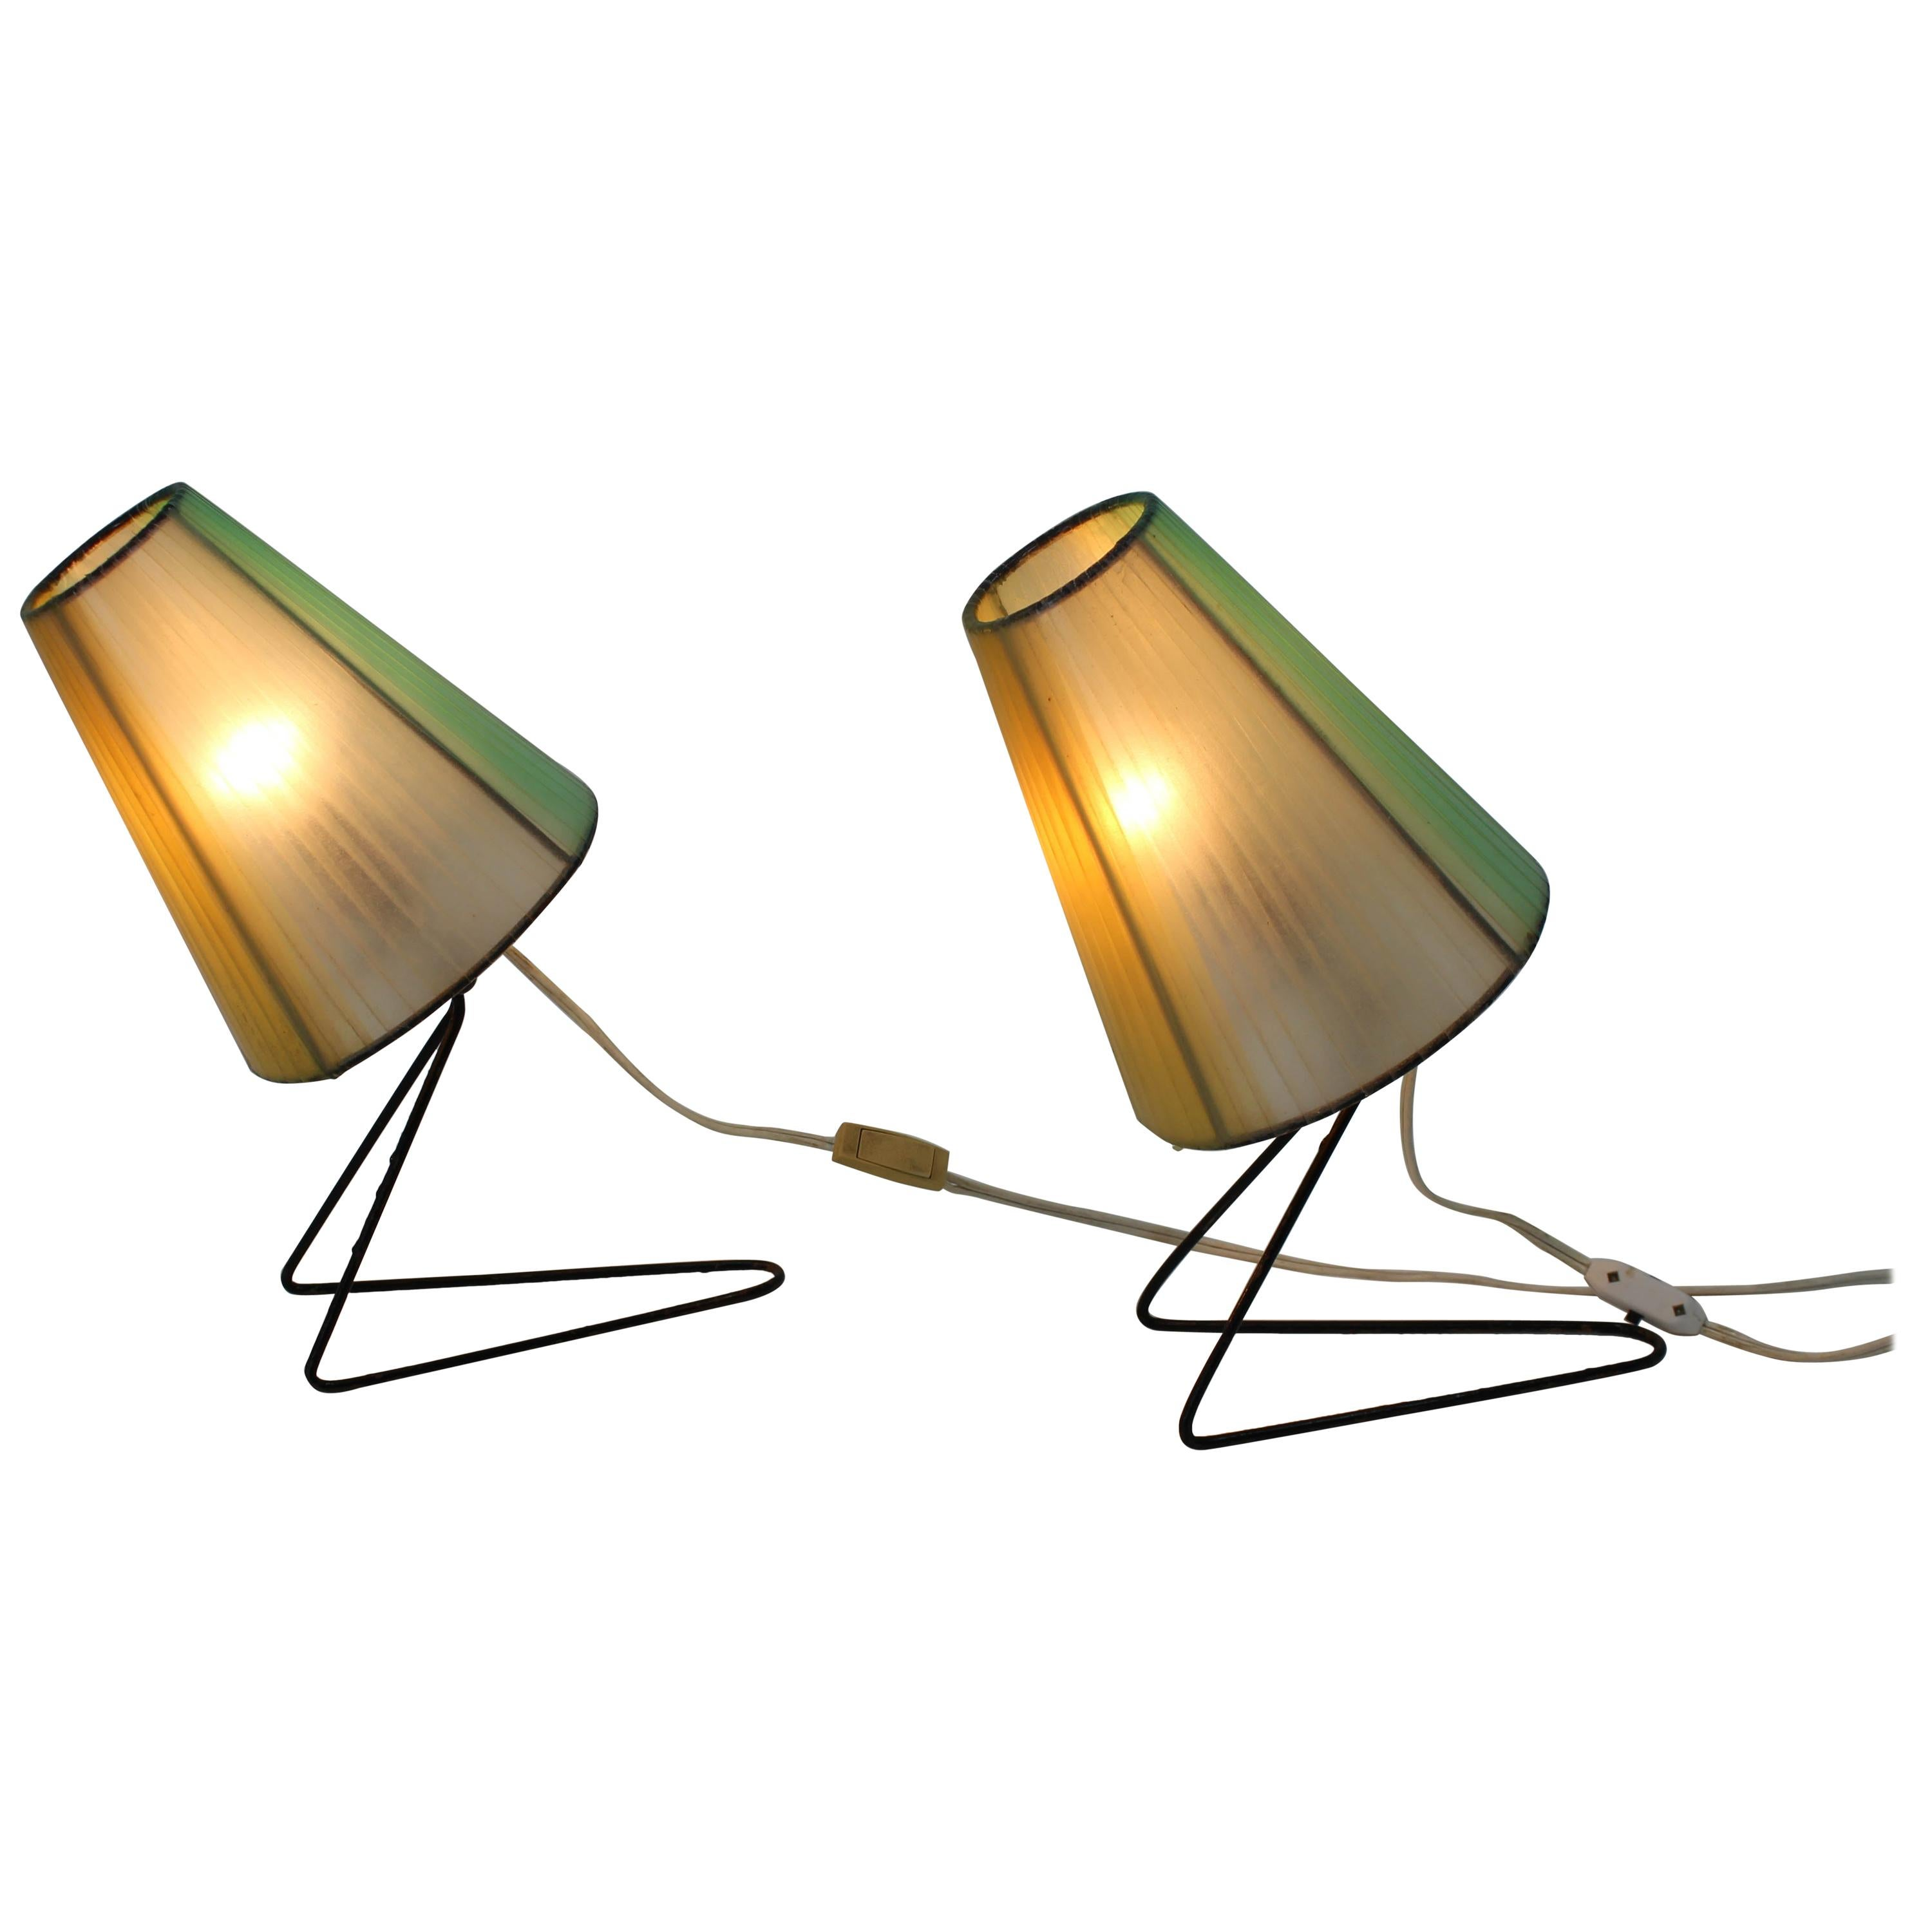 Set of Two Midcentury Table or Bedside Lamps, 1960